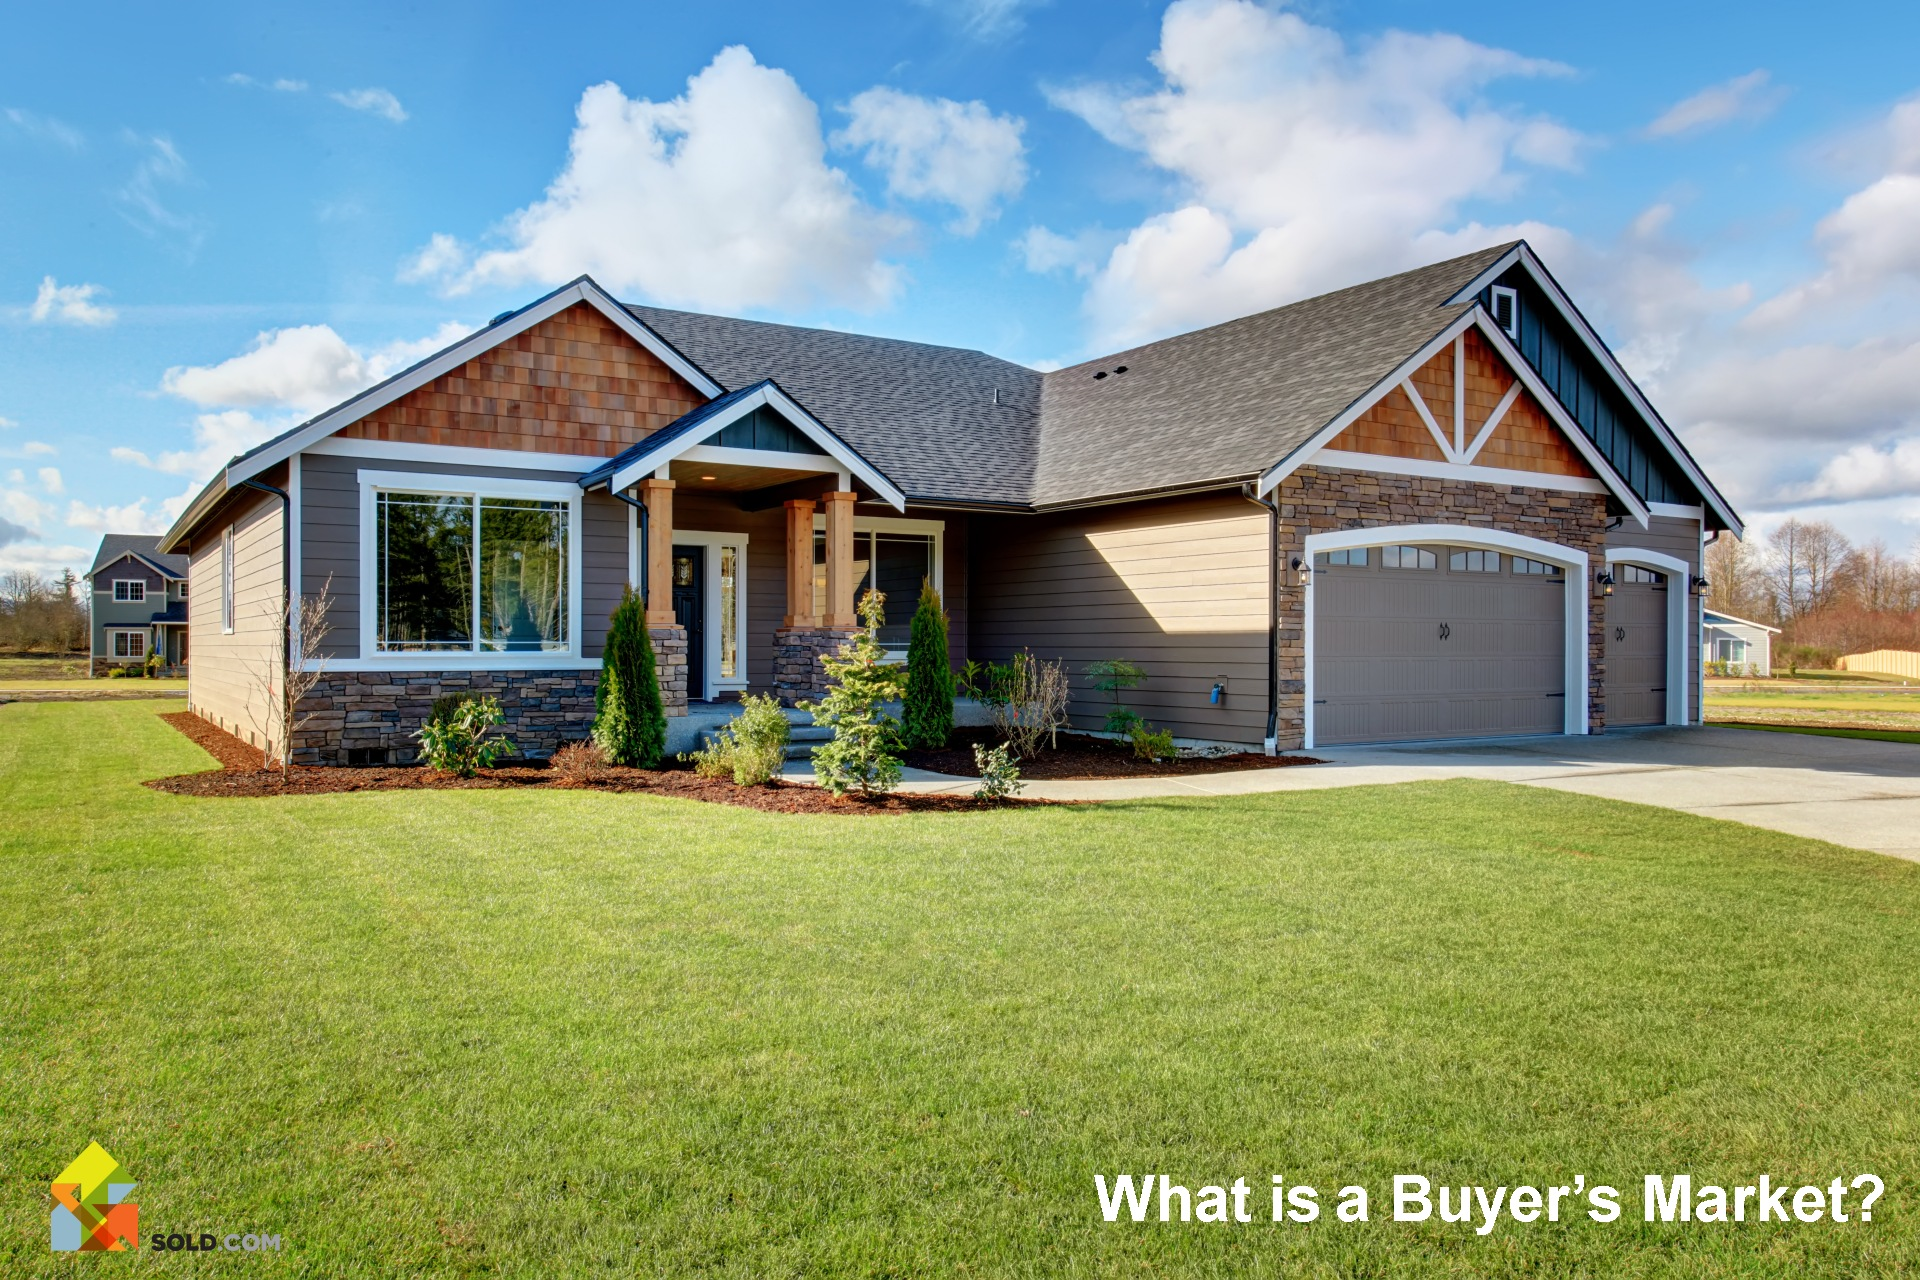 What is a Buyer's Market? Implications for Buyers and Sellers